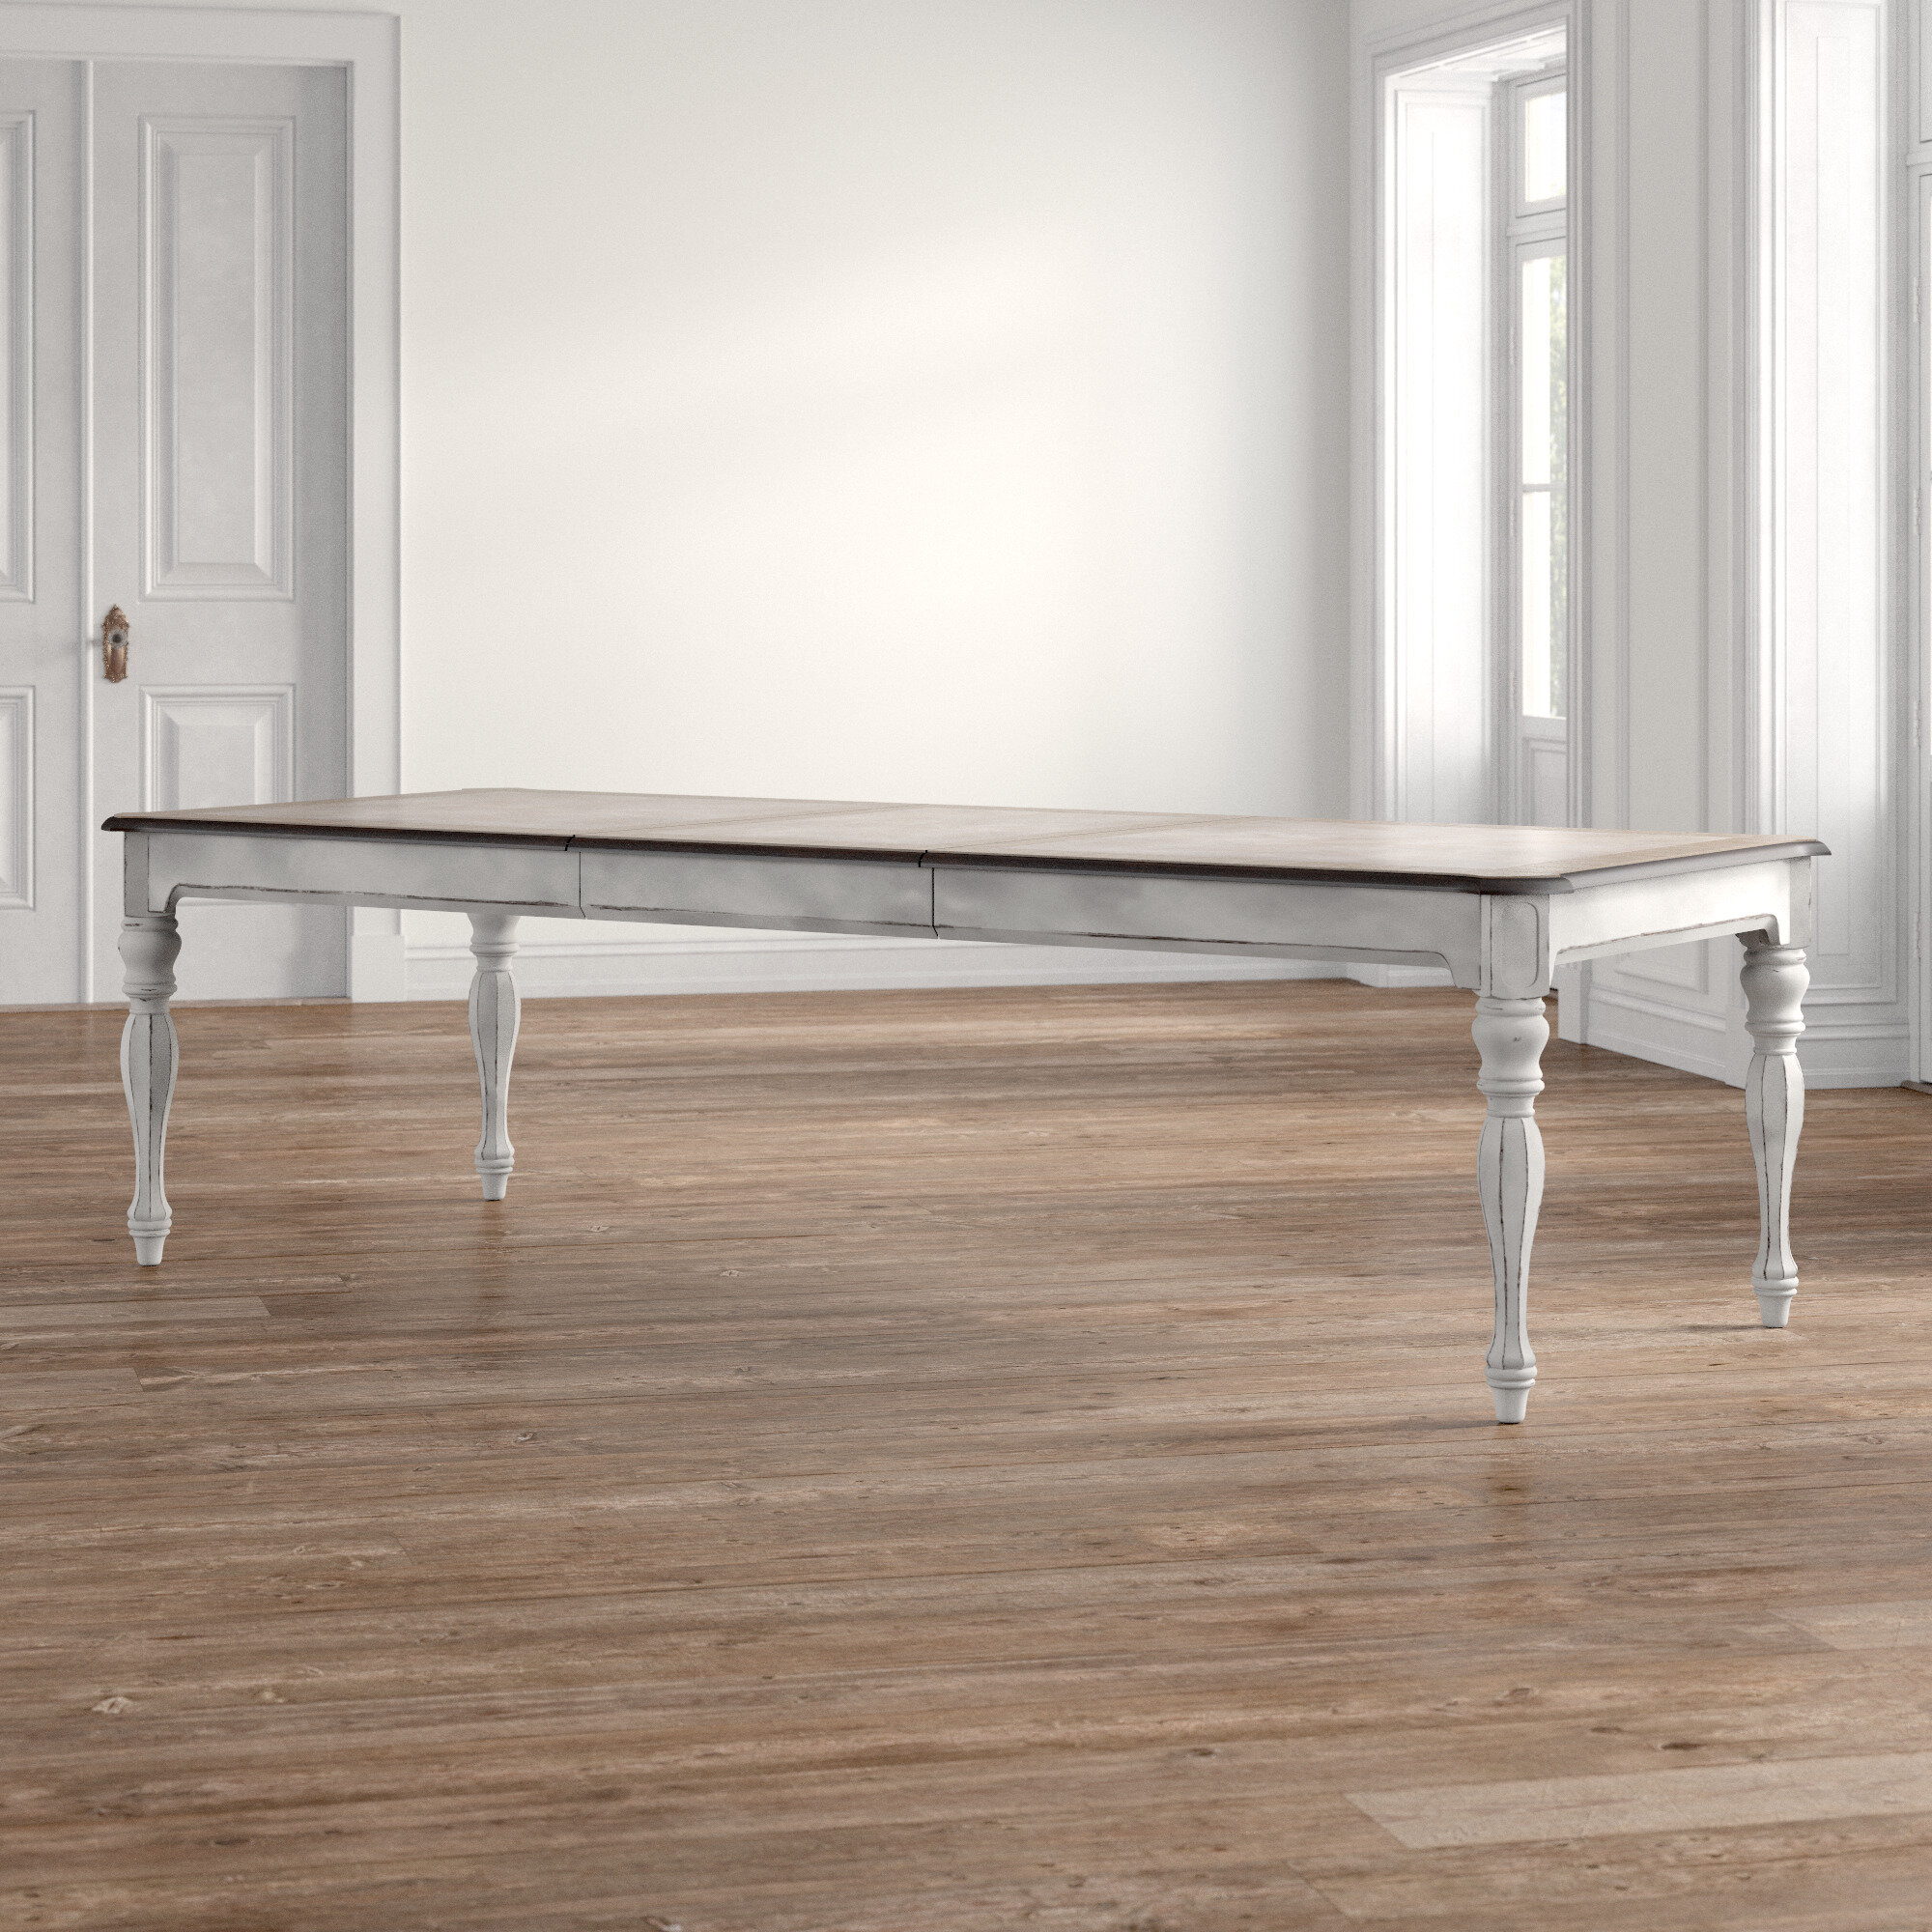 Kelly Clarkson Home Tiphaine Extendable Dining Table Reviews Wayfair